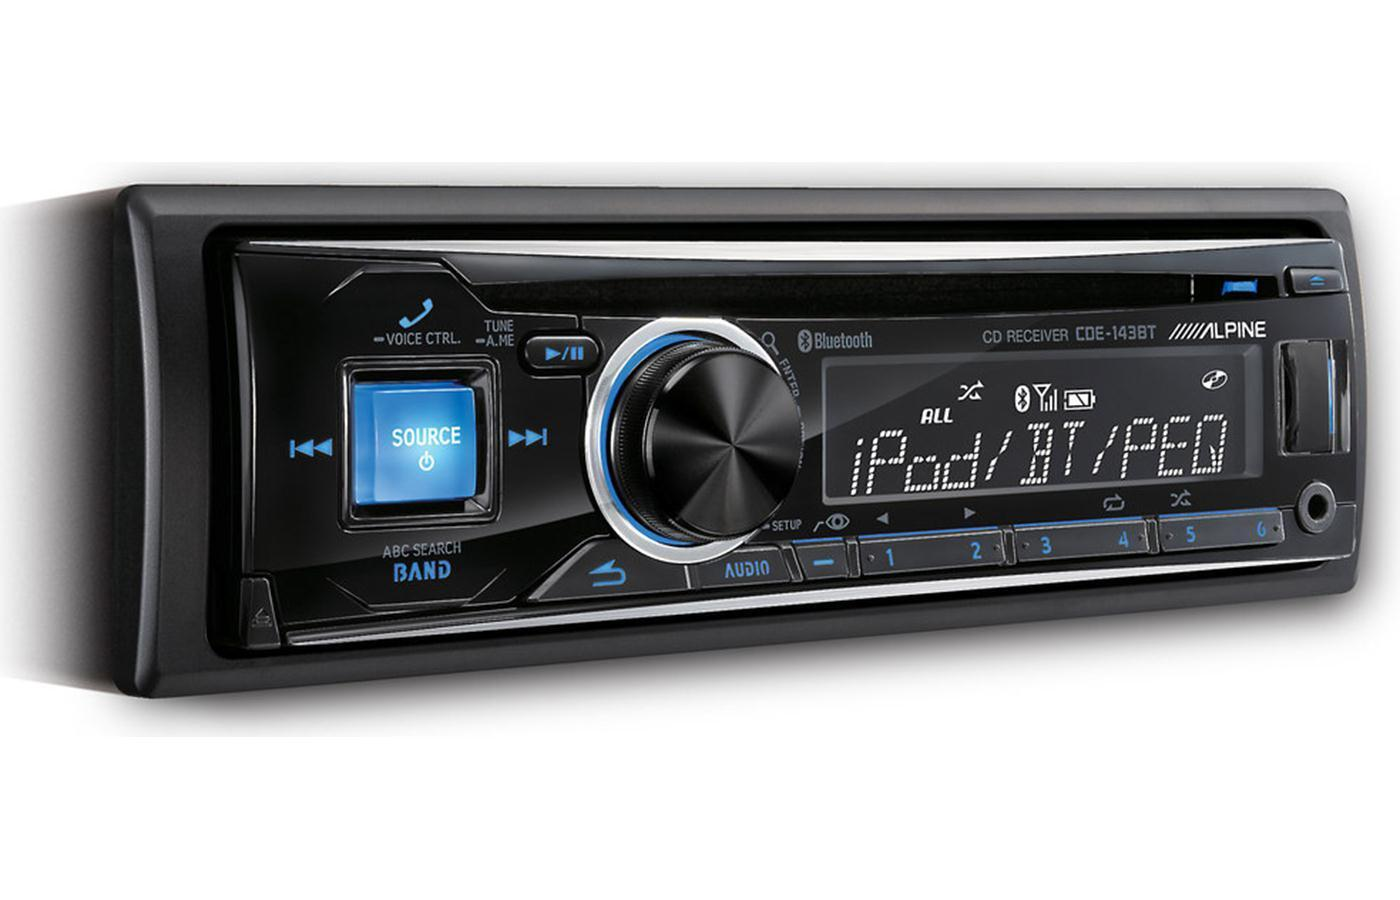 $109.99 - ALPINE CDE-143BT Car Stereo CD/USB Receiver w/ Advanced Bluetooth